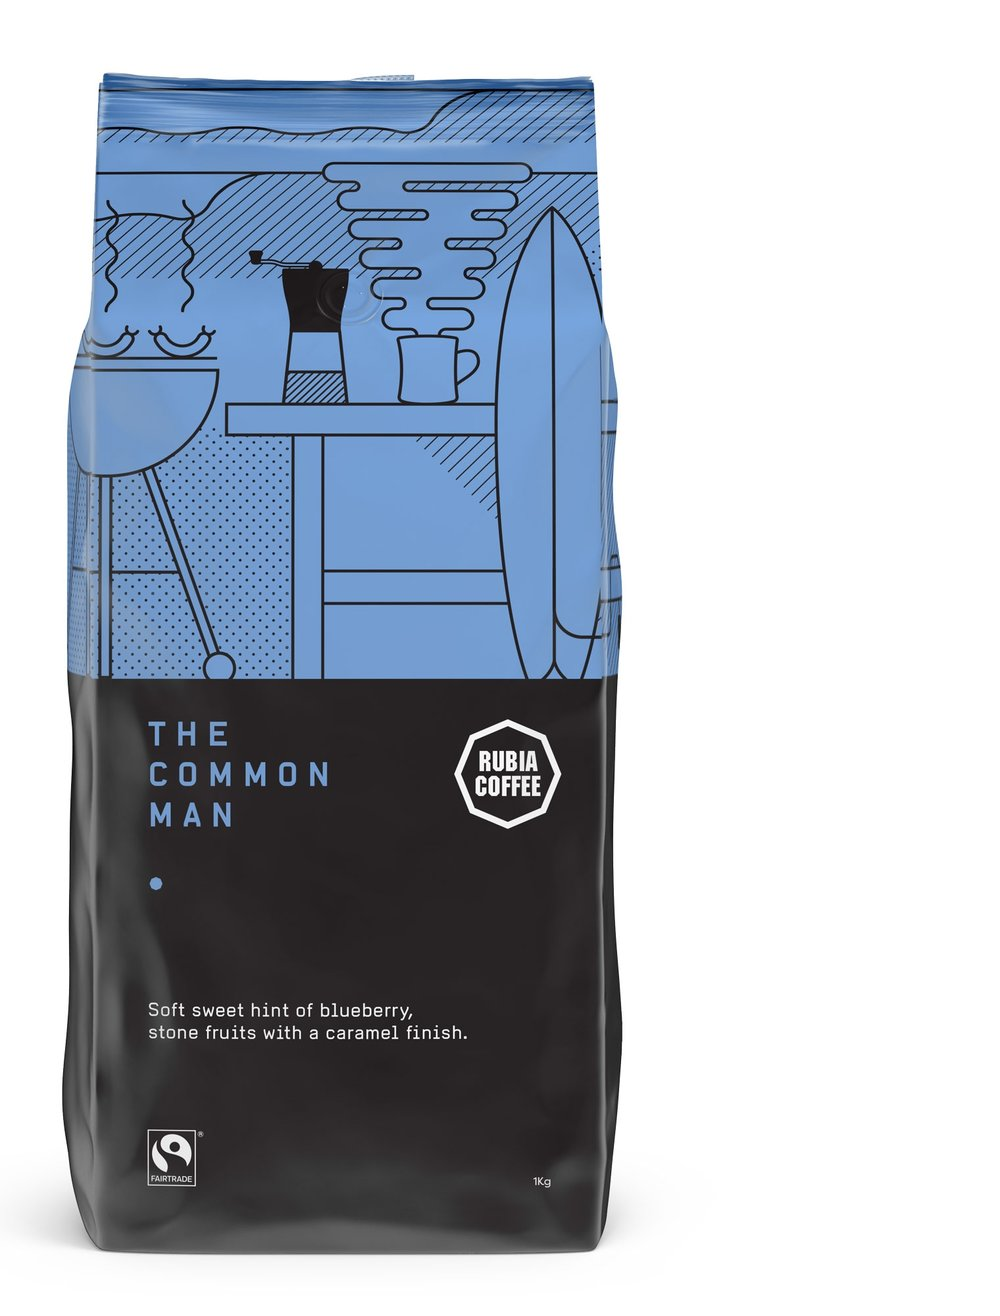 Rubia Coffee The Common Man coffee blend